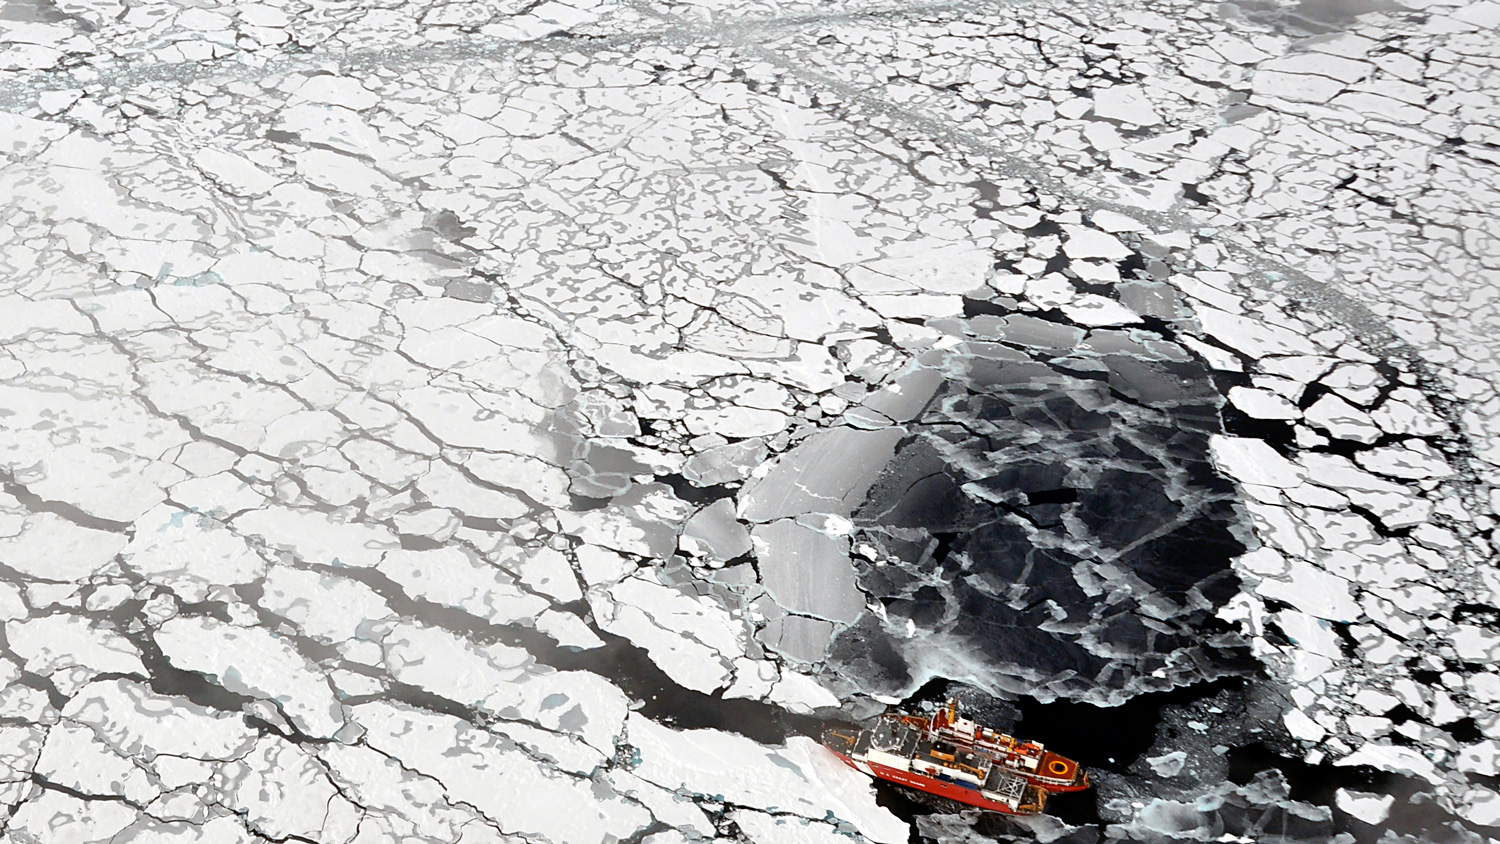 Aerial photo of U.S. Coast Guard icebreaker Healy surrounding by ice floes